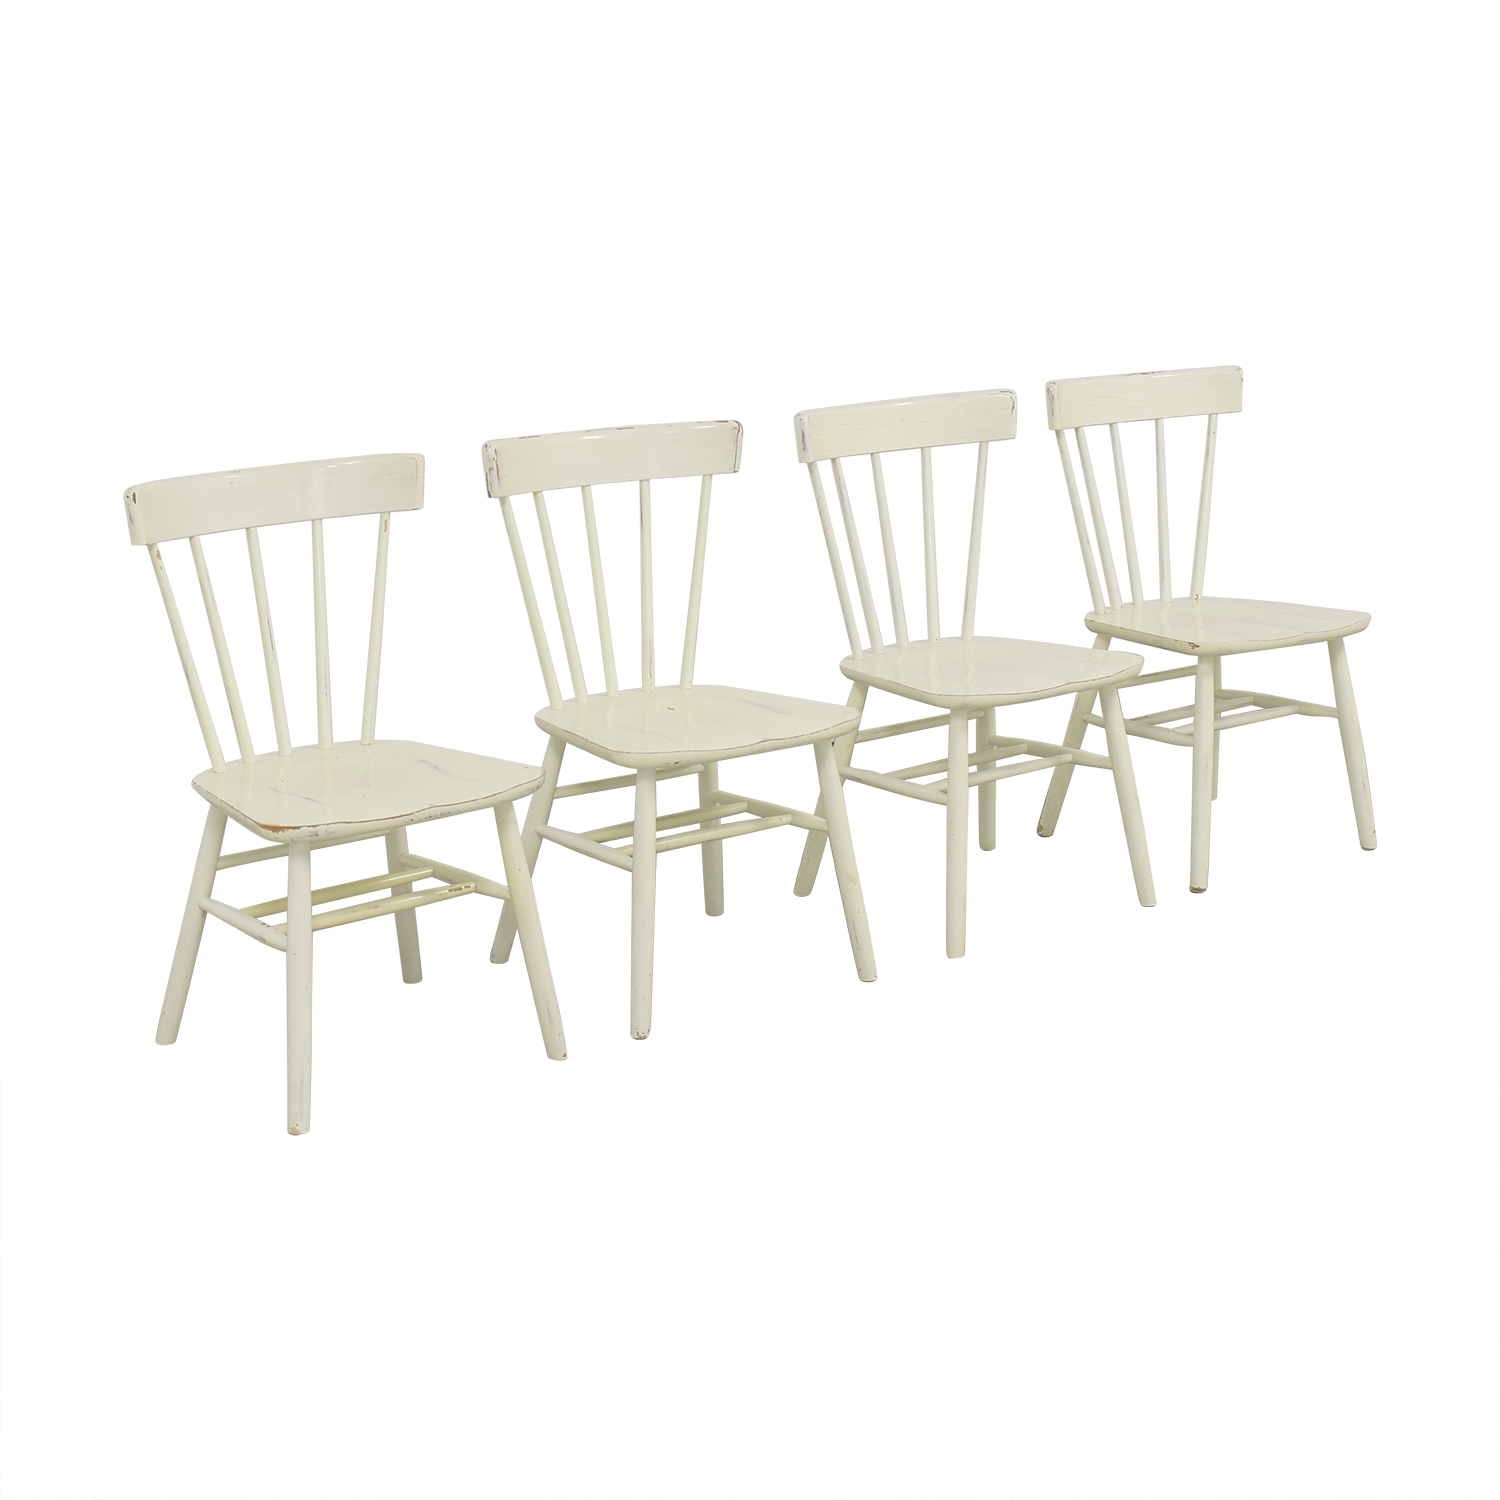 shop Pottery Barn Pottery Barn Rustic Dining Chairs online